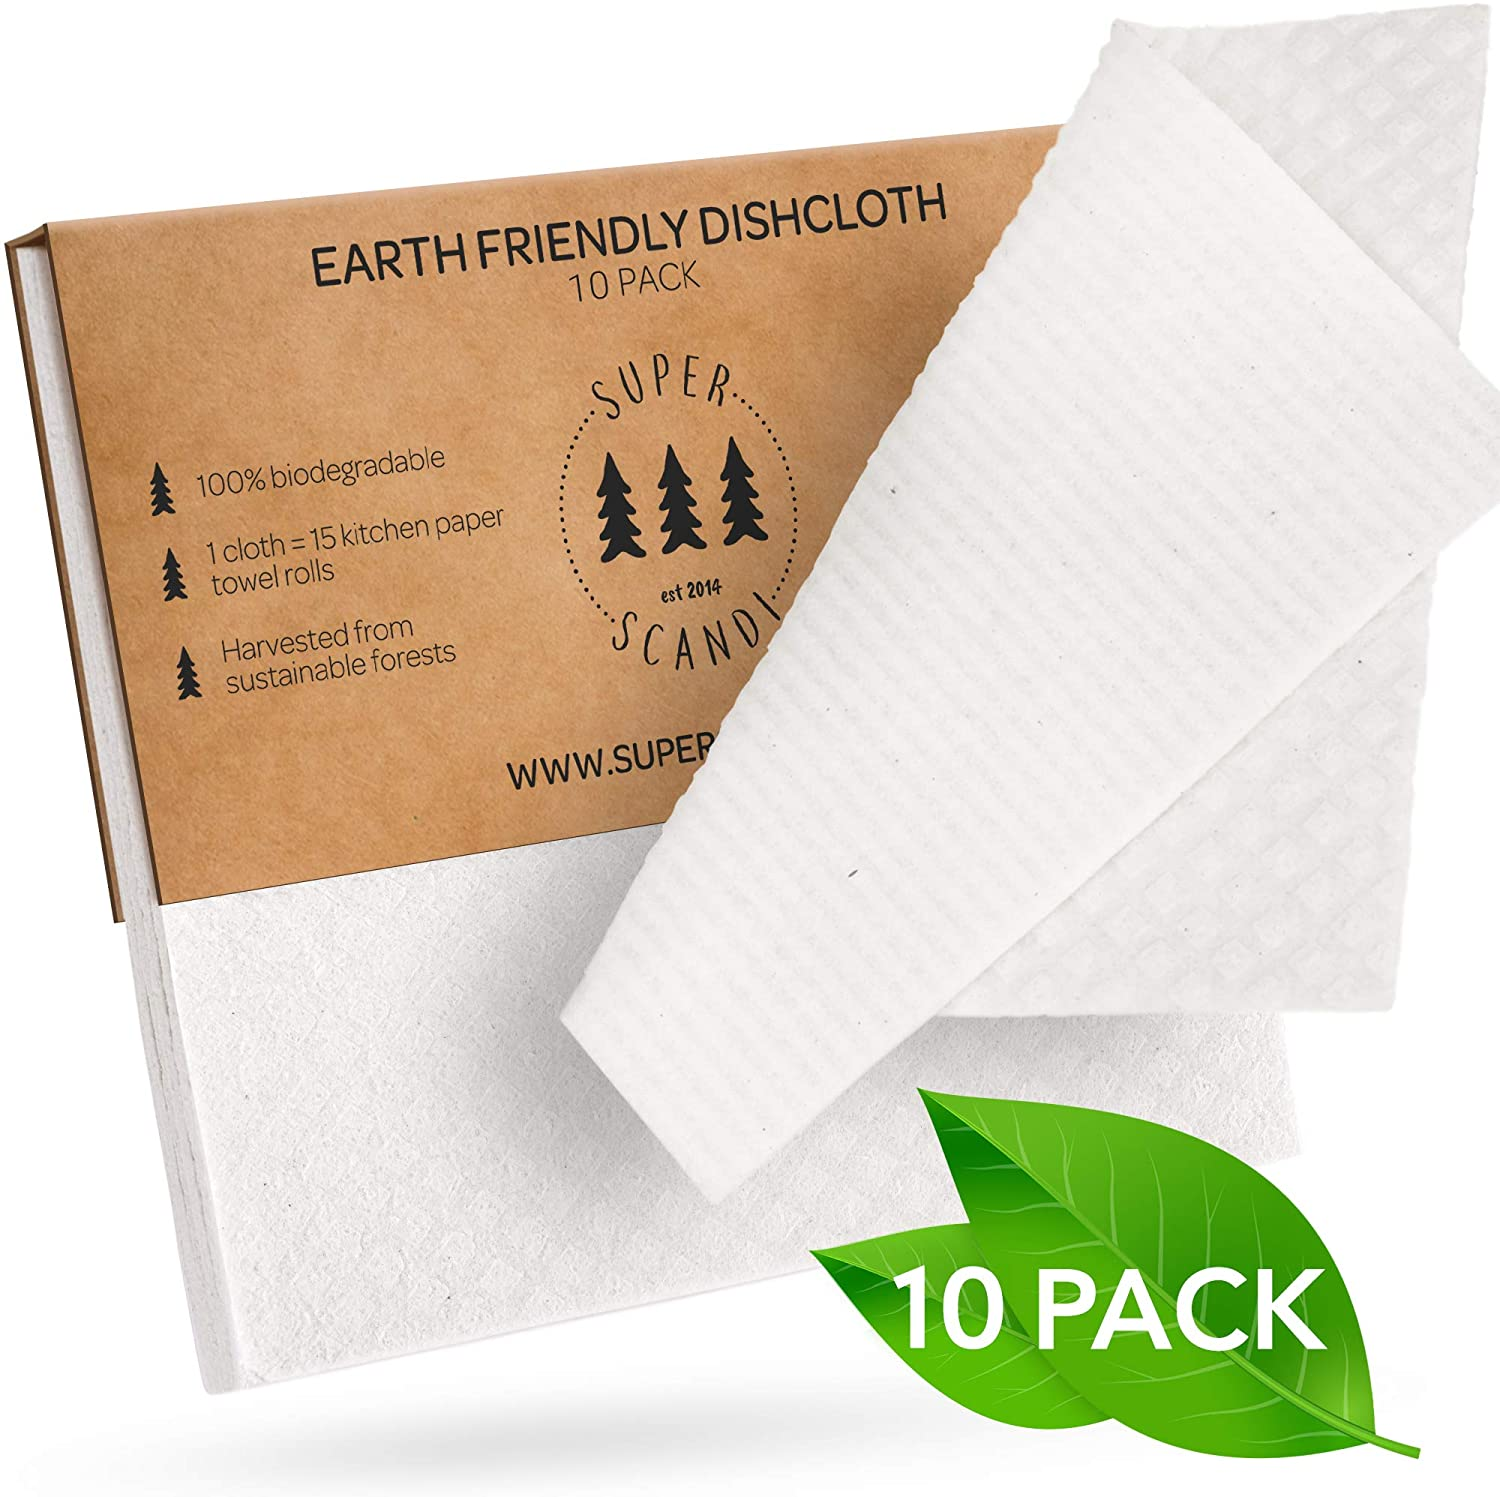 SUPERSCANDI 10 Pack Swedish Dishcloths Eco Friendly Reusable Sustainable Biodegradable Cellulose Sponge Cleaning Cloths for Kitchen Dish Rags Washing Paper Towel Replacement Washcloths (10 Pack White)